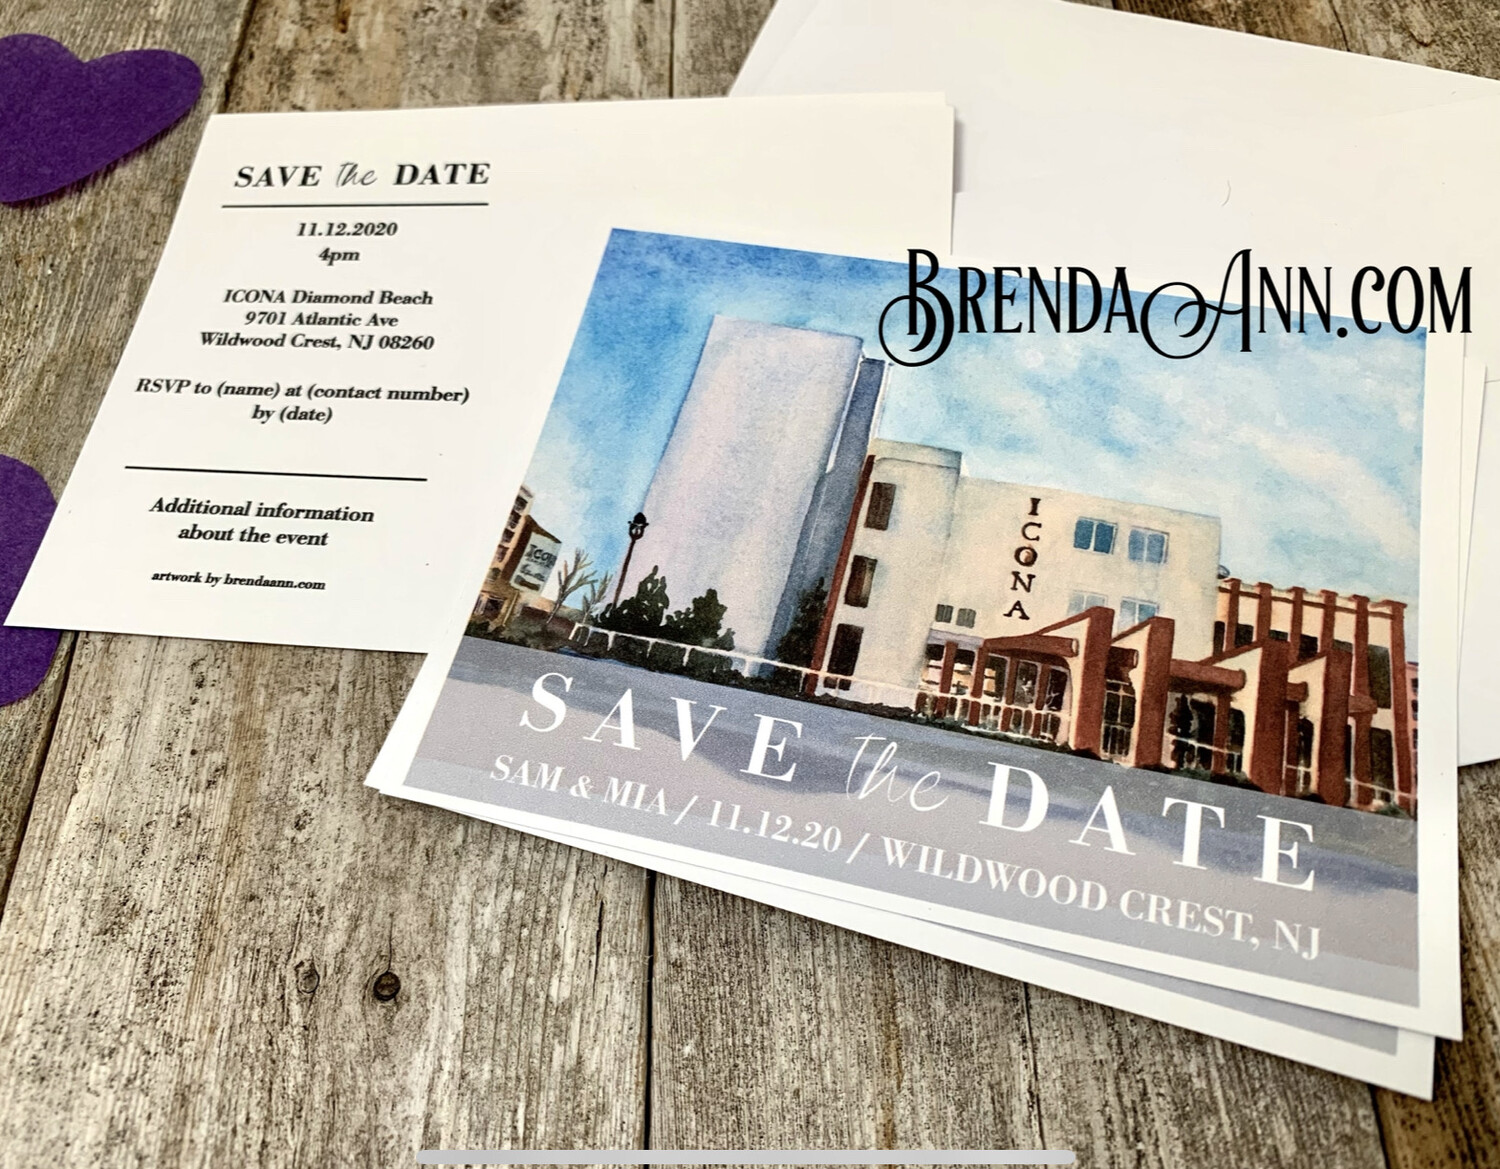 Wedding Save the Date Cards - ICONA Diamond Beach in Wildwood Crest NJ - Watercolor by Brenda Ann